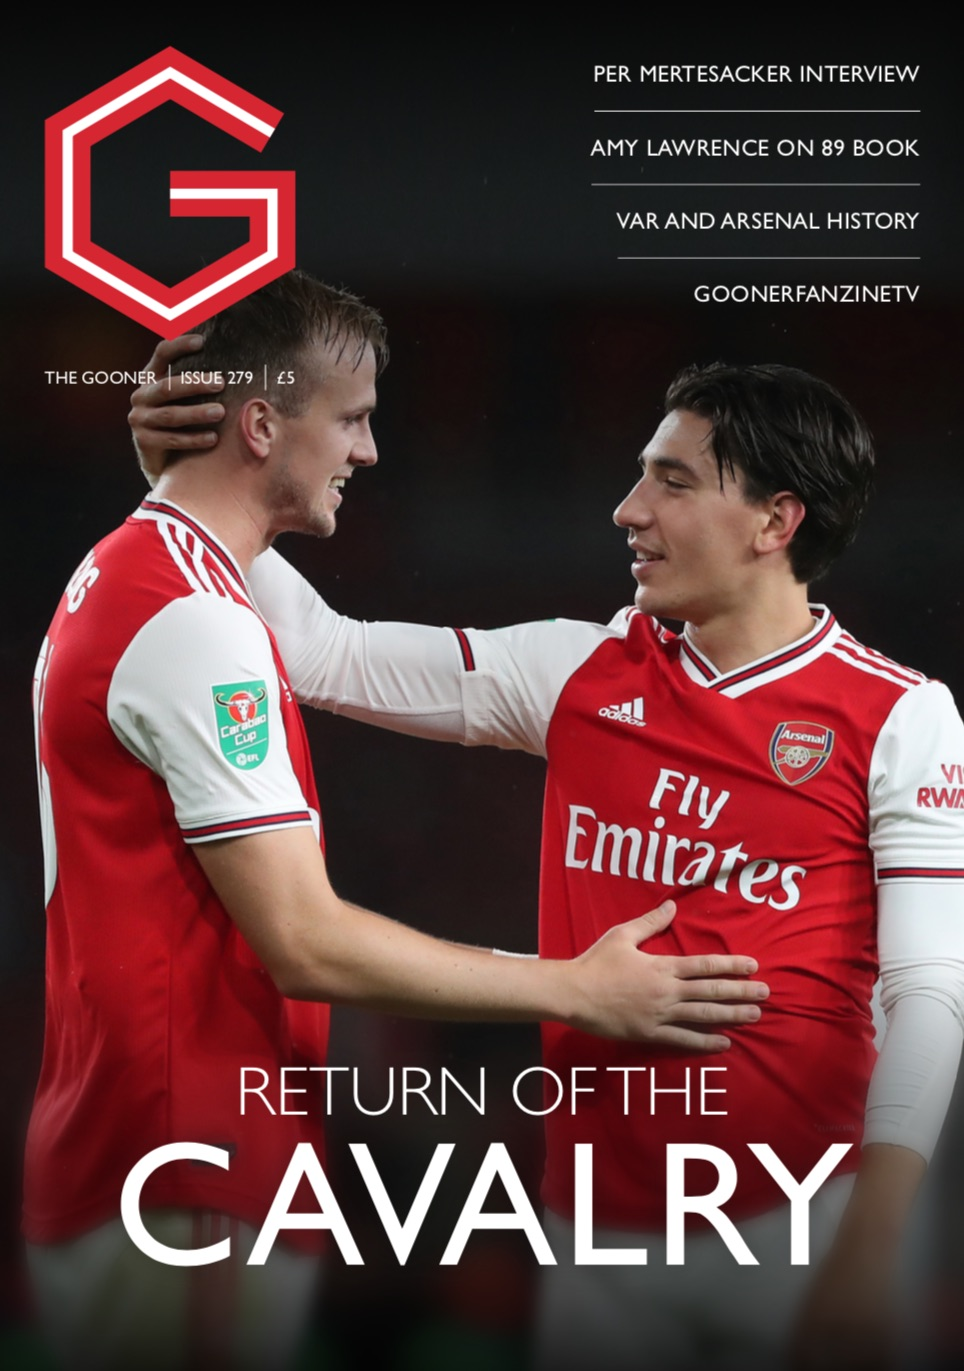 Current Edition – The Gooner Issue 279 (UK)